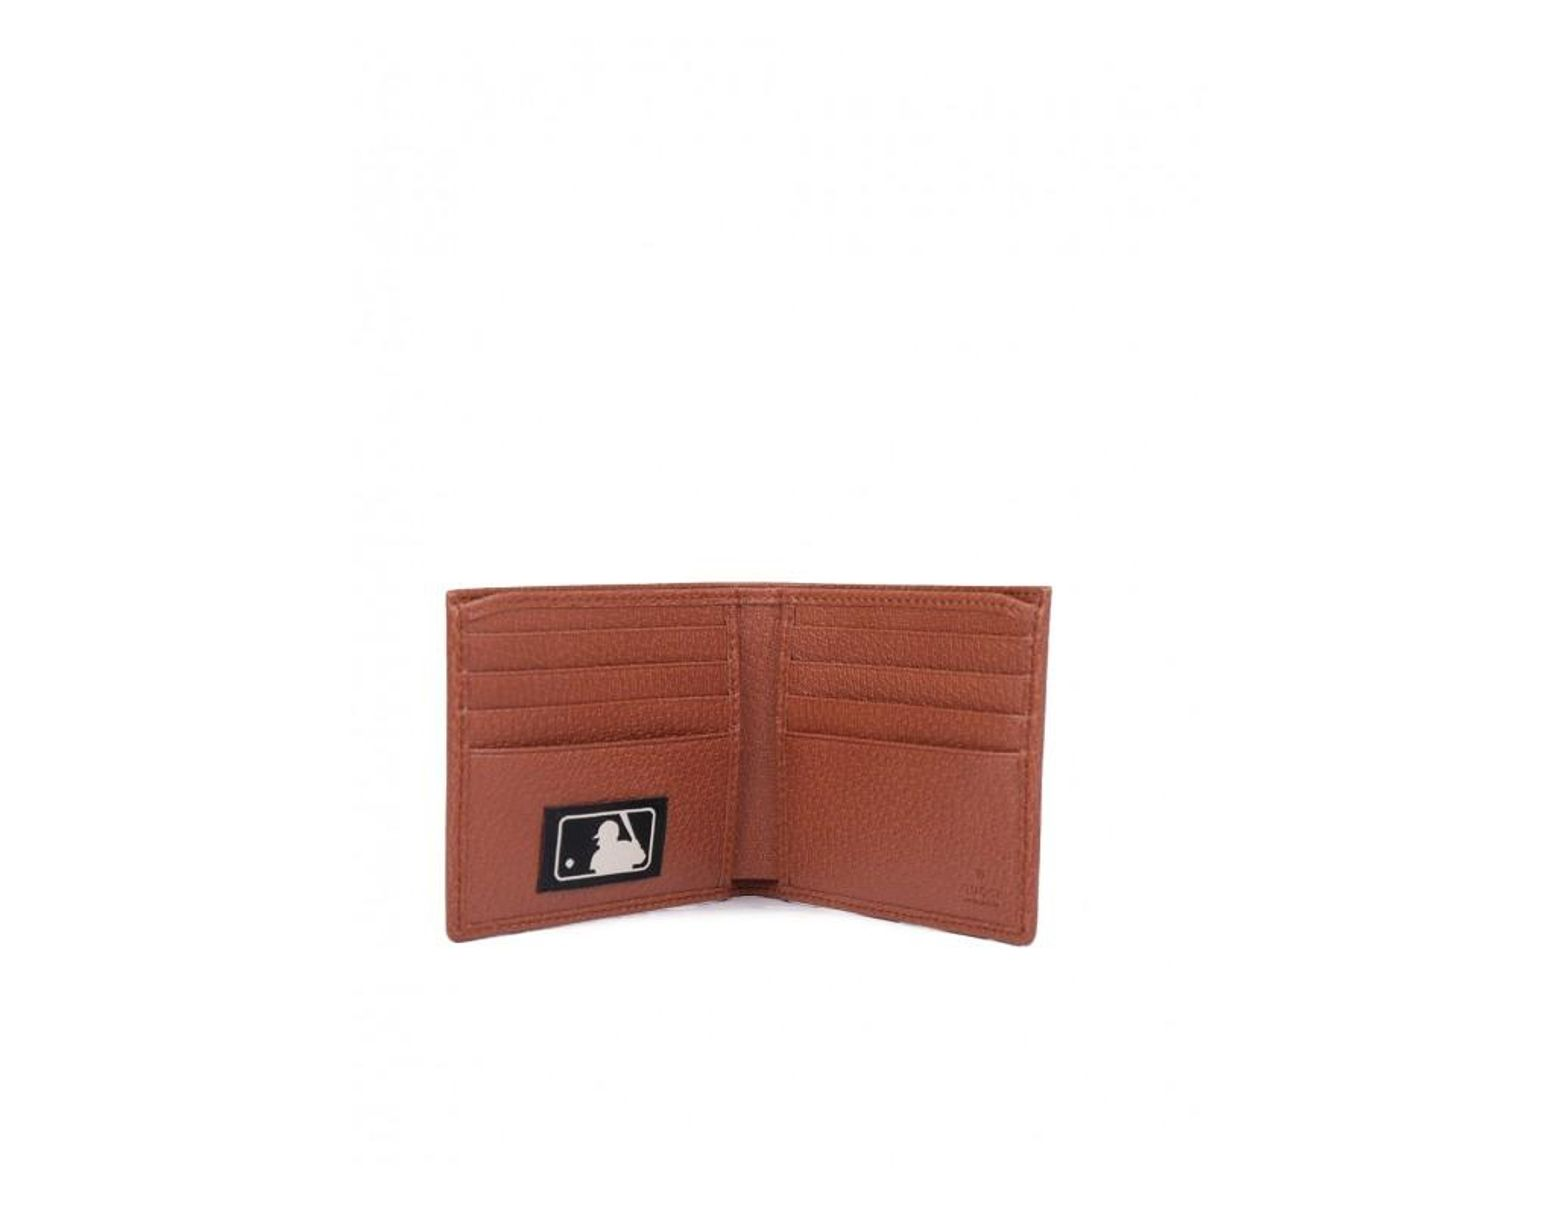 9c831d750f Gucci Original GG Canvas Wallet With New York Yankees Patchtm in Brown for  Men - Save 36% - Lyst